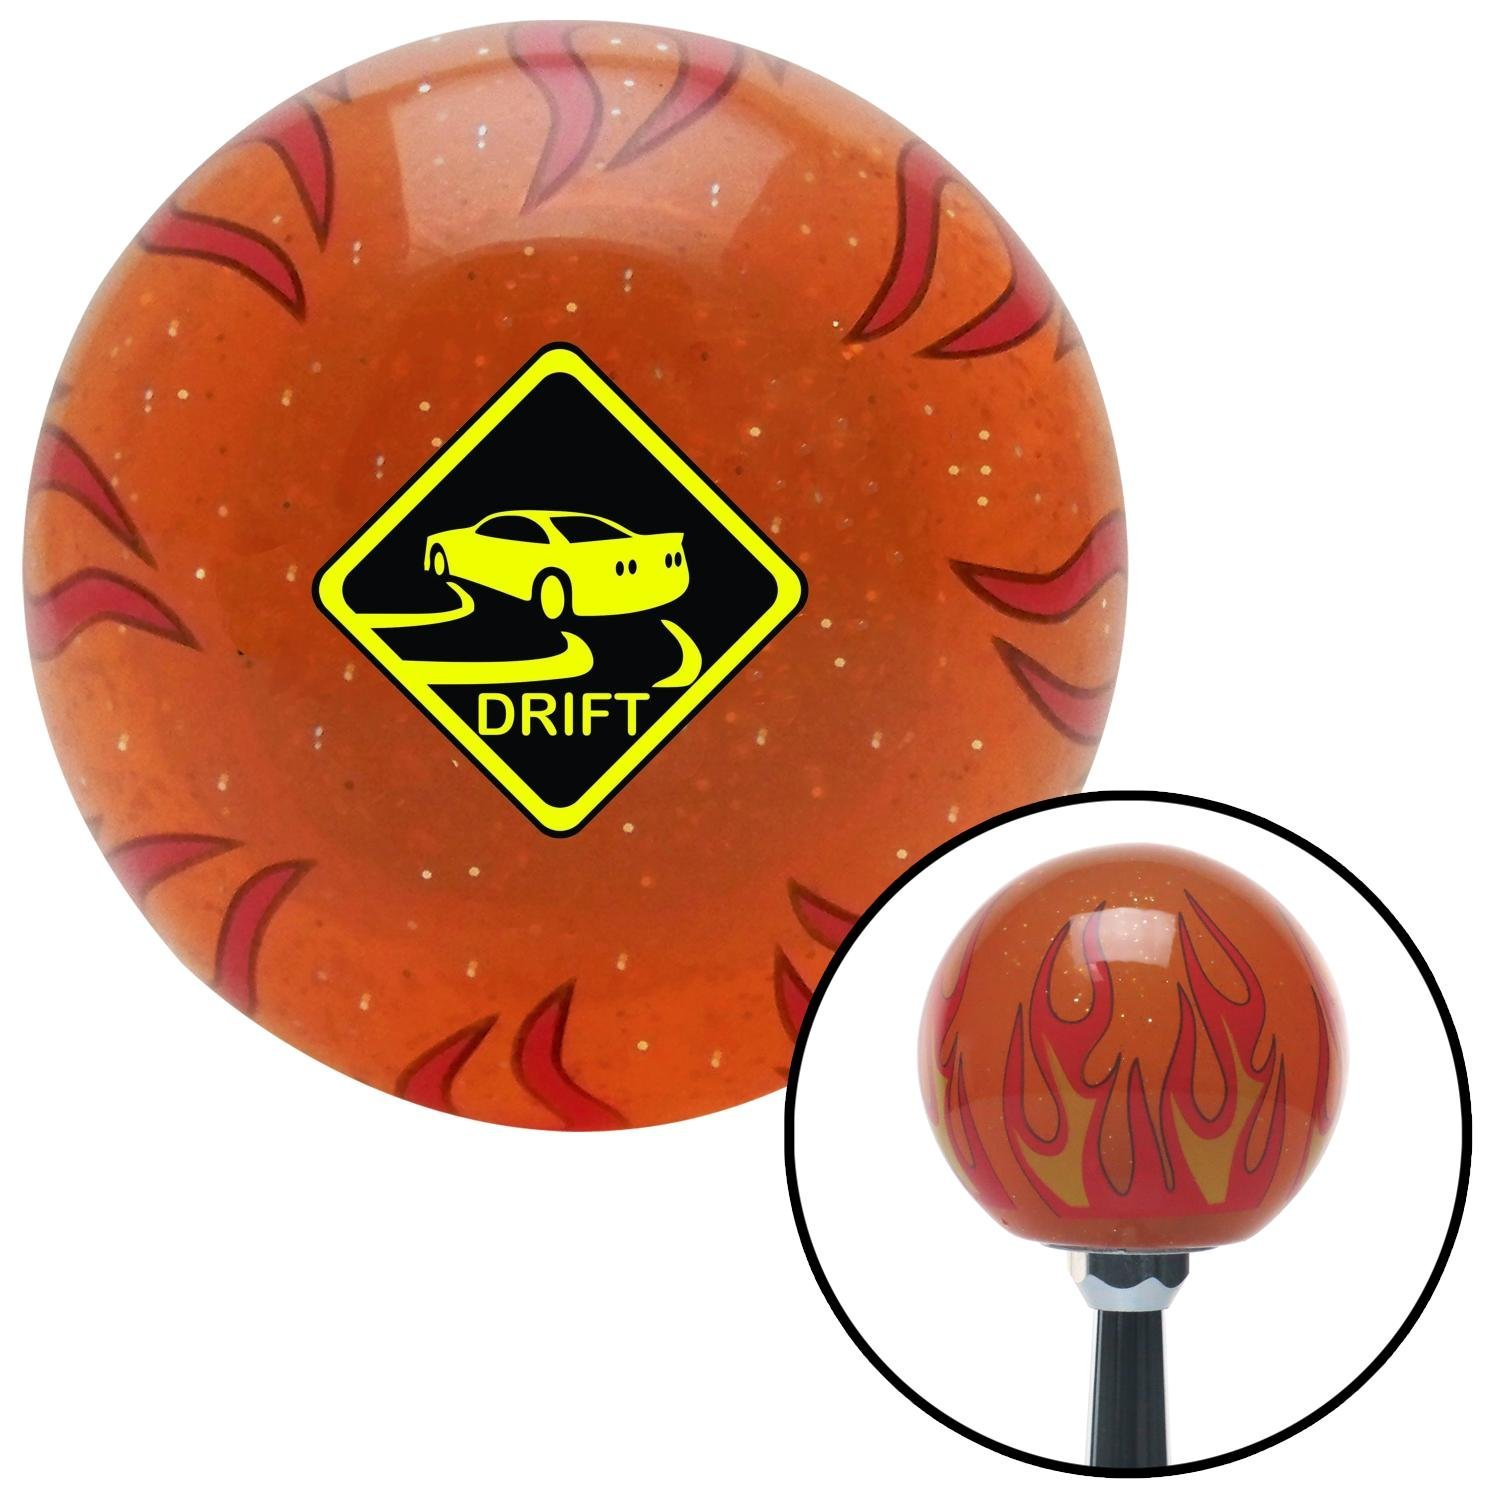 American Shifter 258993 Orange Flame Metal Flake Shift Knob with M16 x 1.5 Insert Yield to My Drift